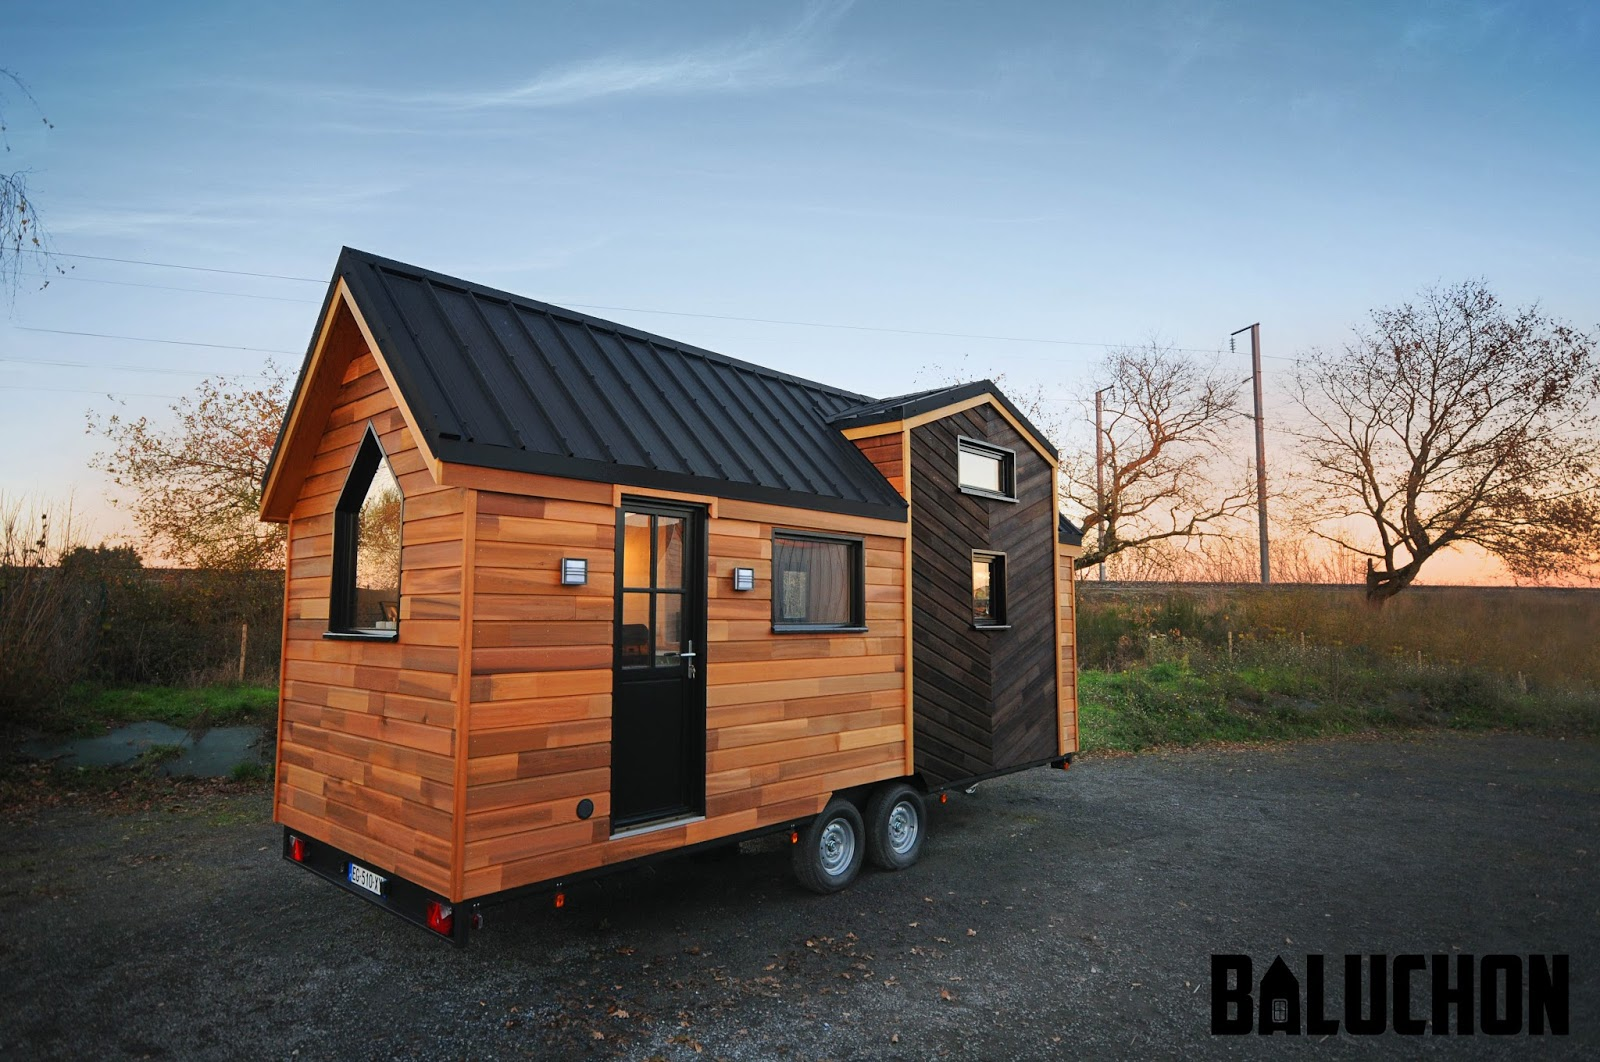 tiny house town the calypso tiny house from baluchon. Black Bedroom Furniture Sets. Home Design Ideas